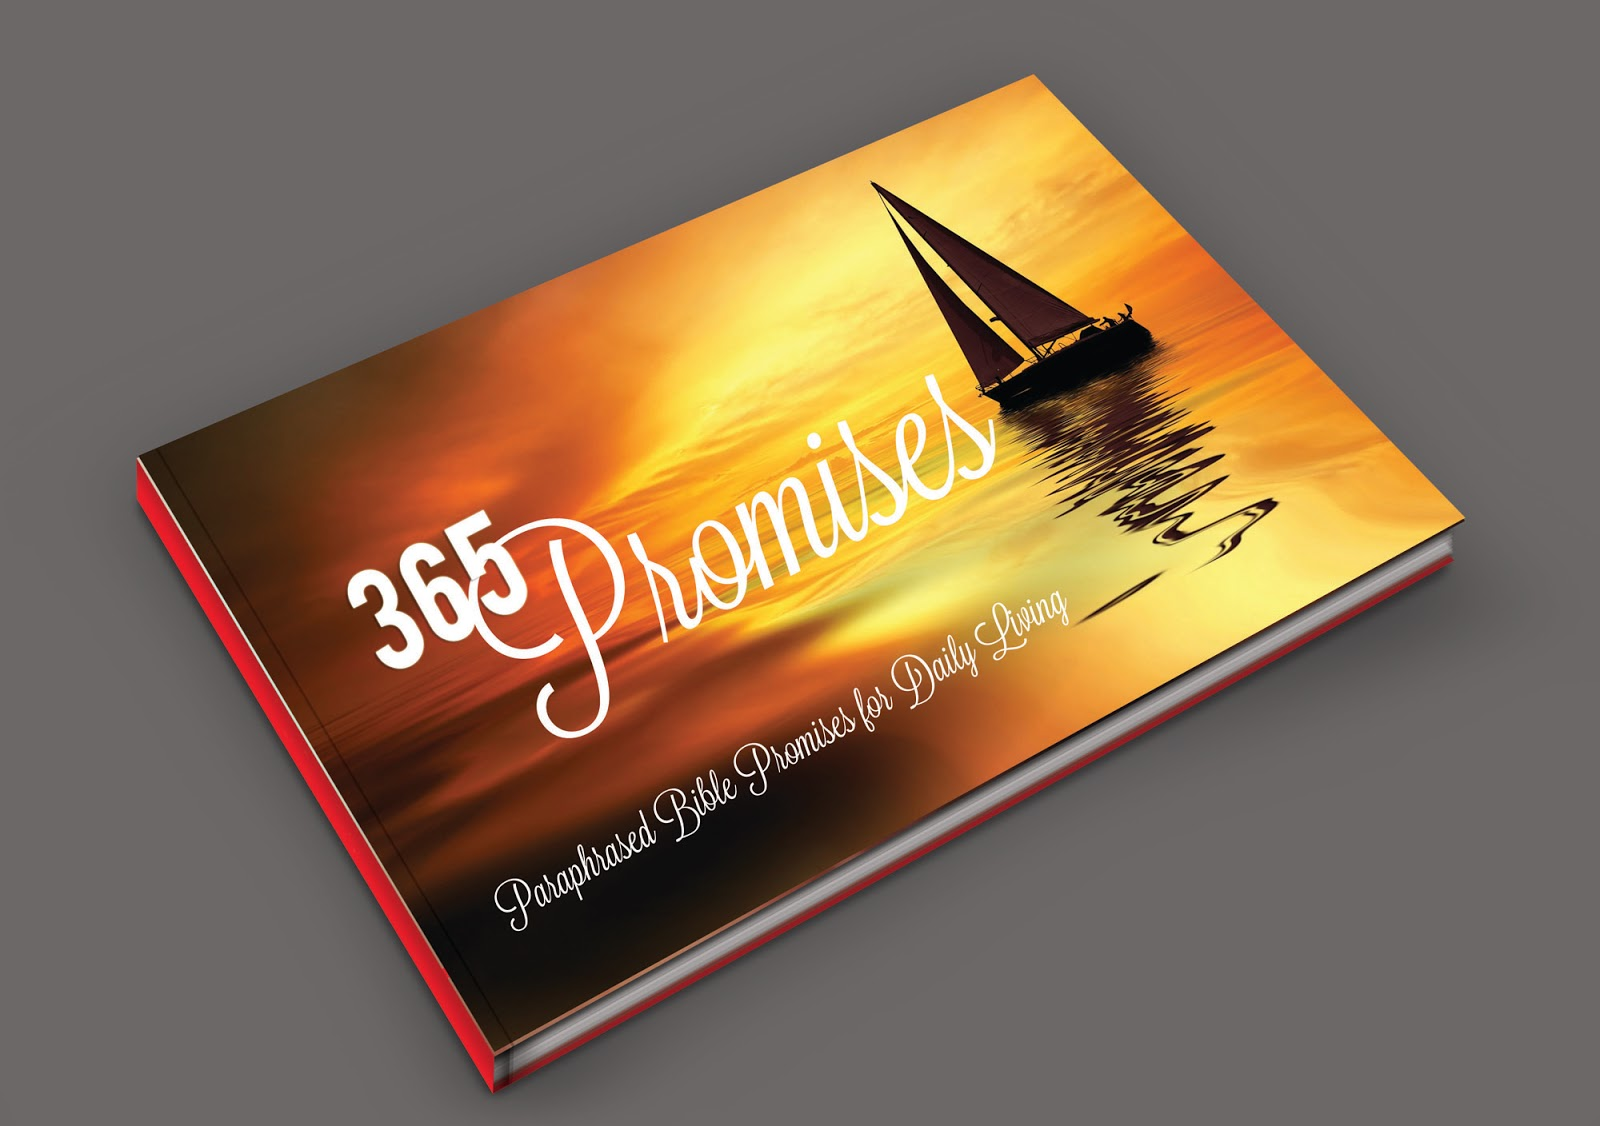 Sign up and get the 365 Promises Ebook